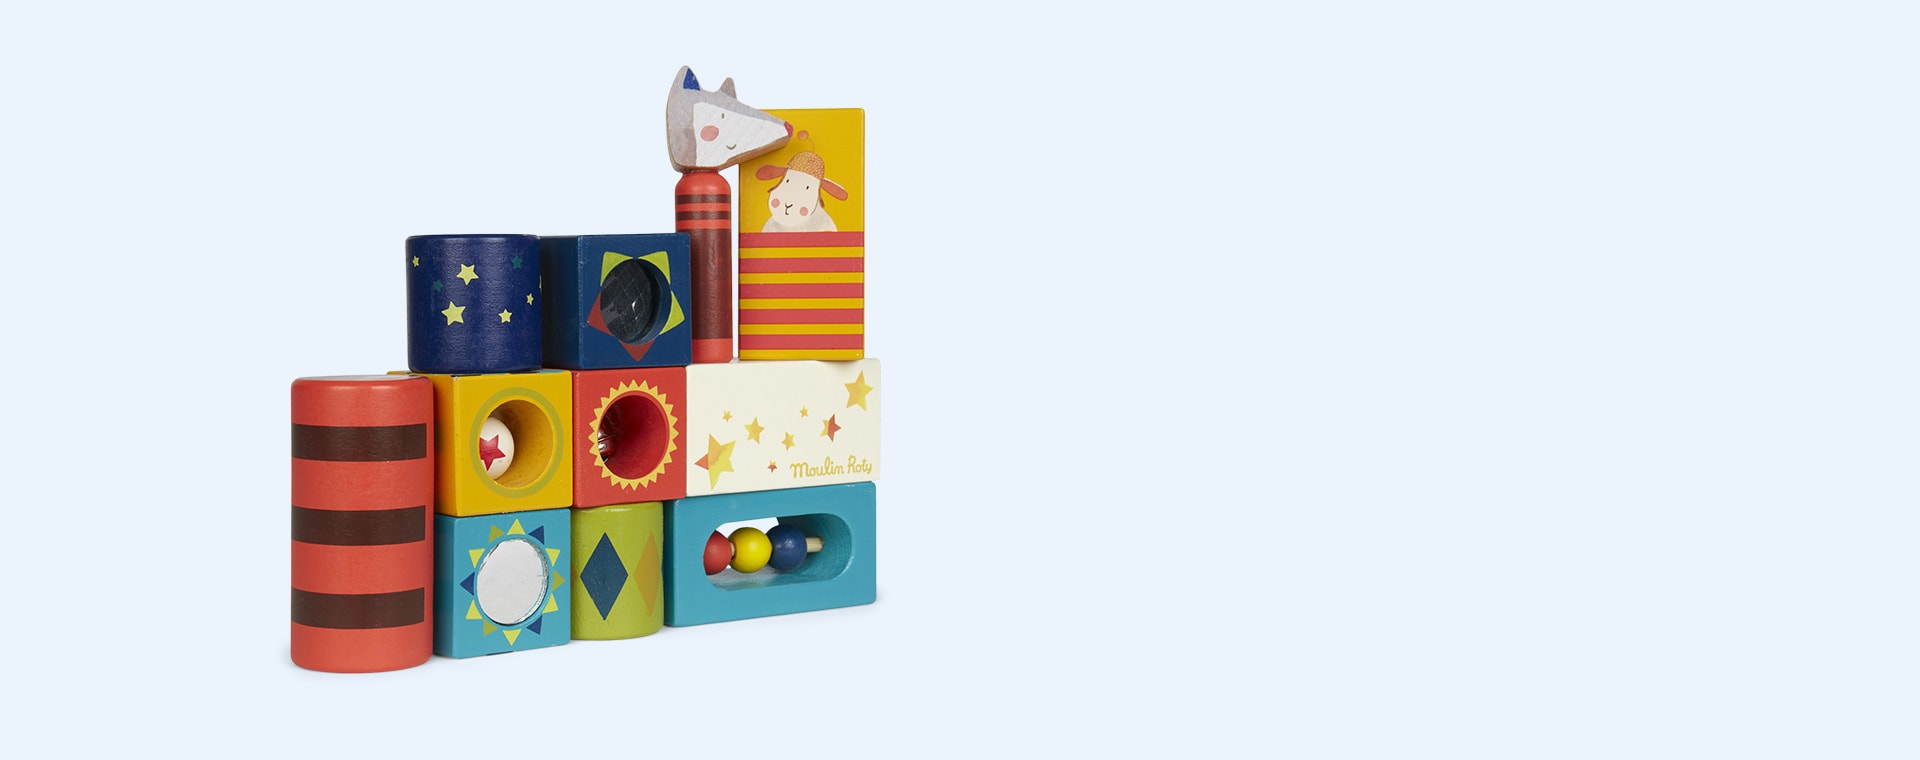 Multi Moulin Roty Stack Up Activity Cubes